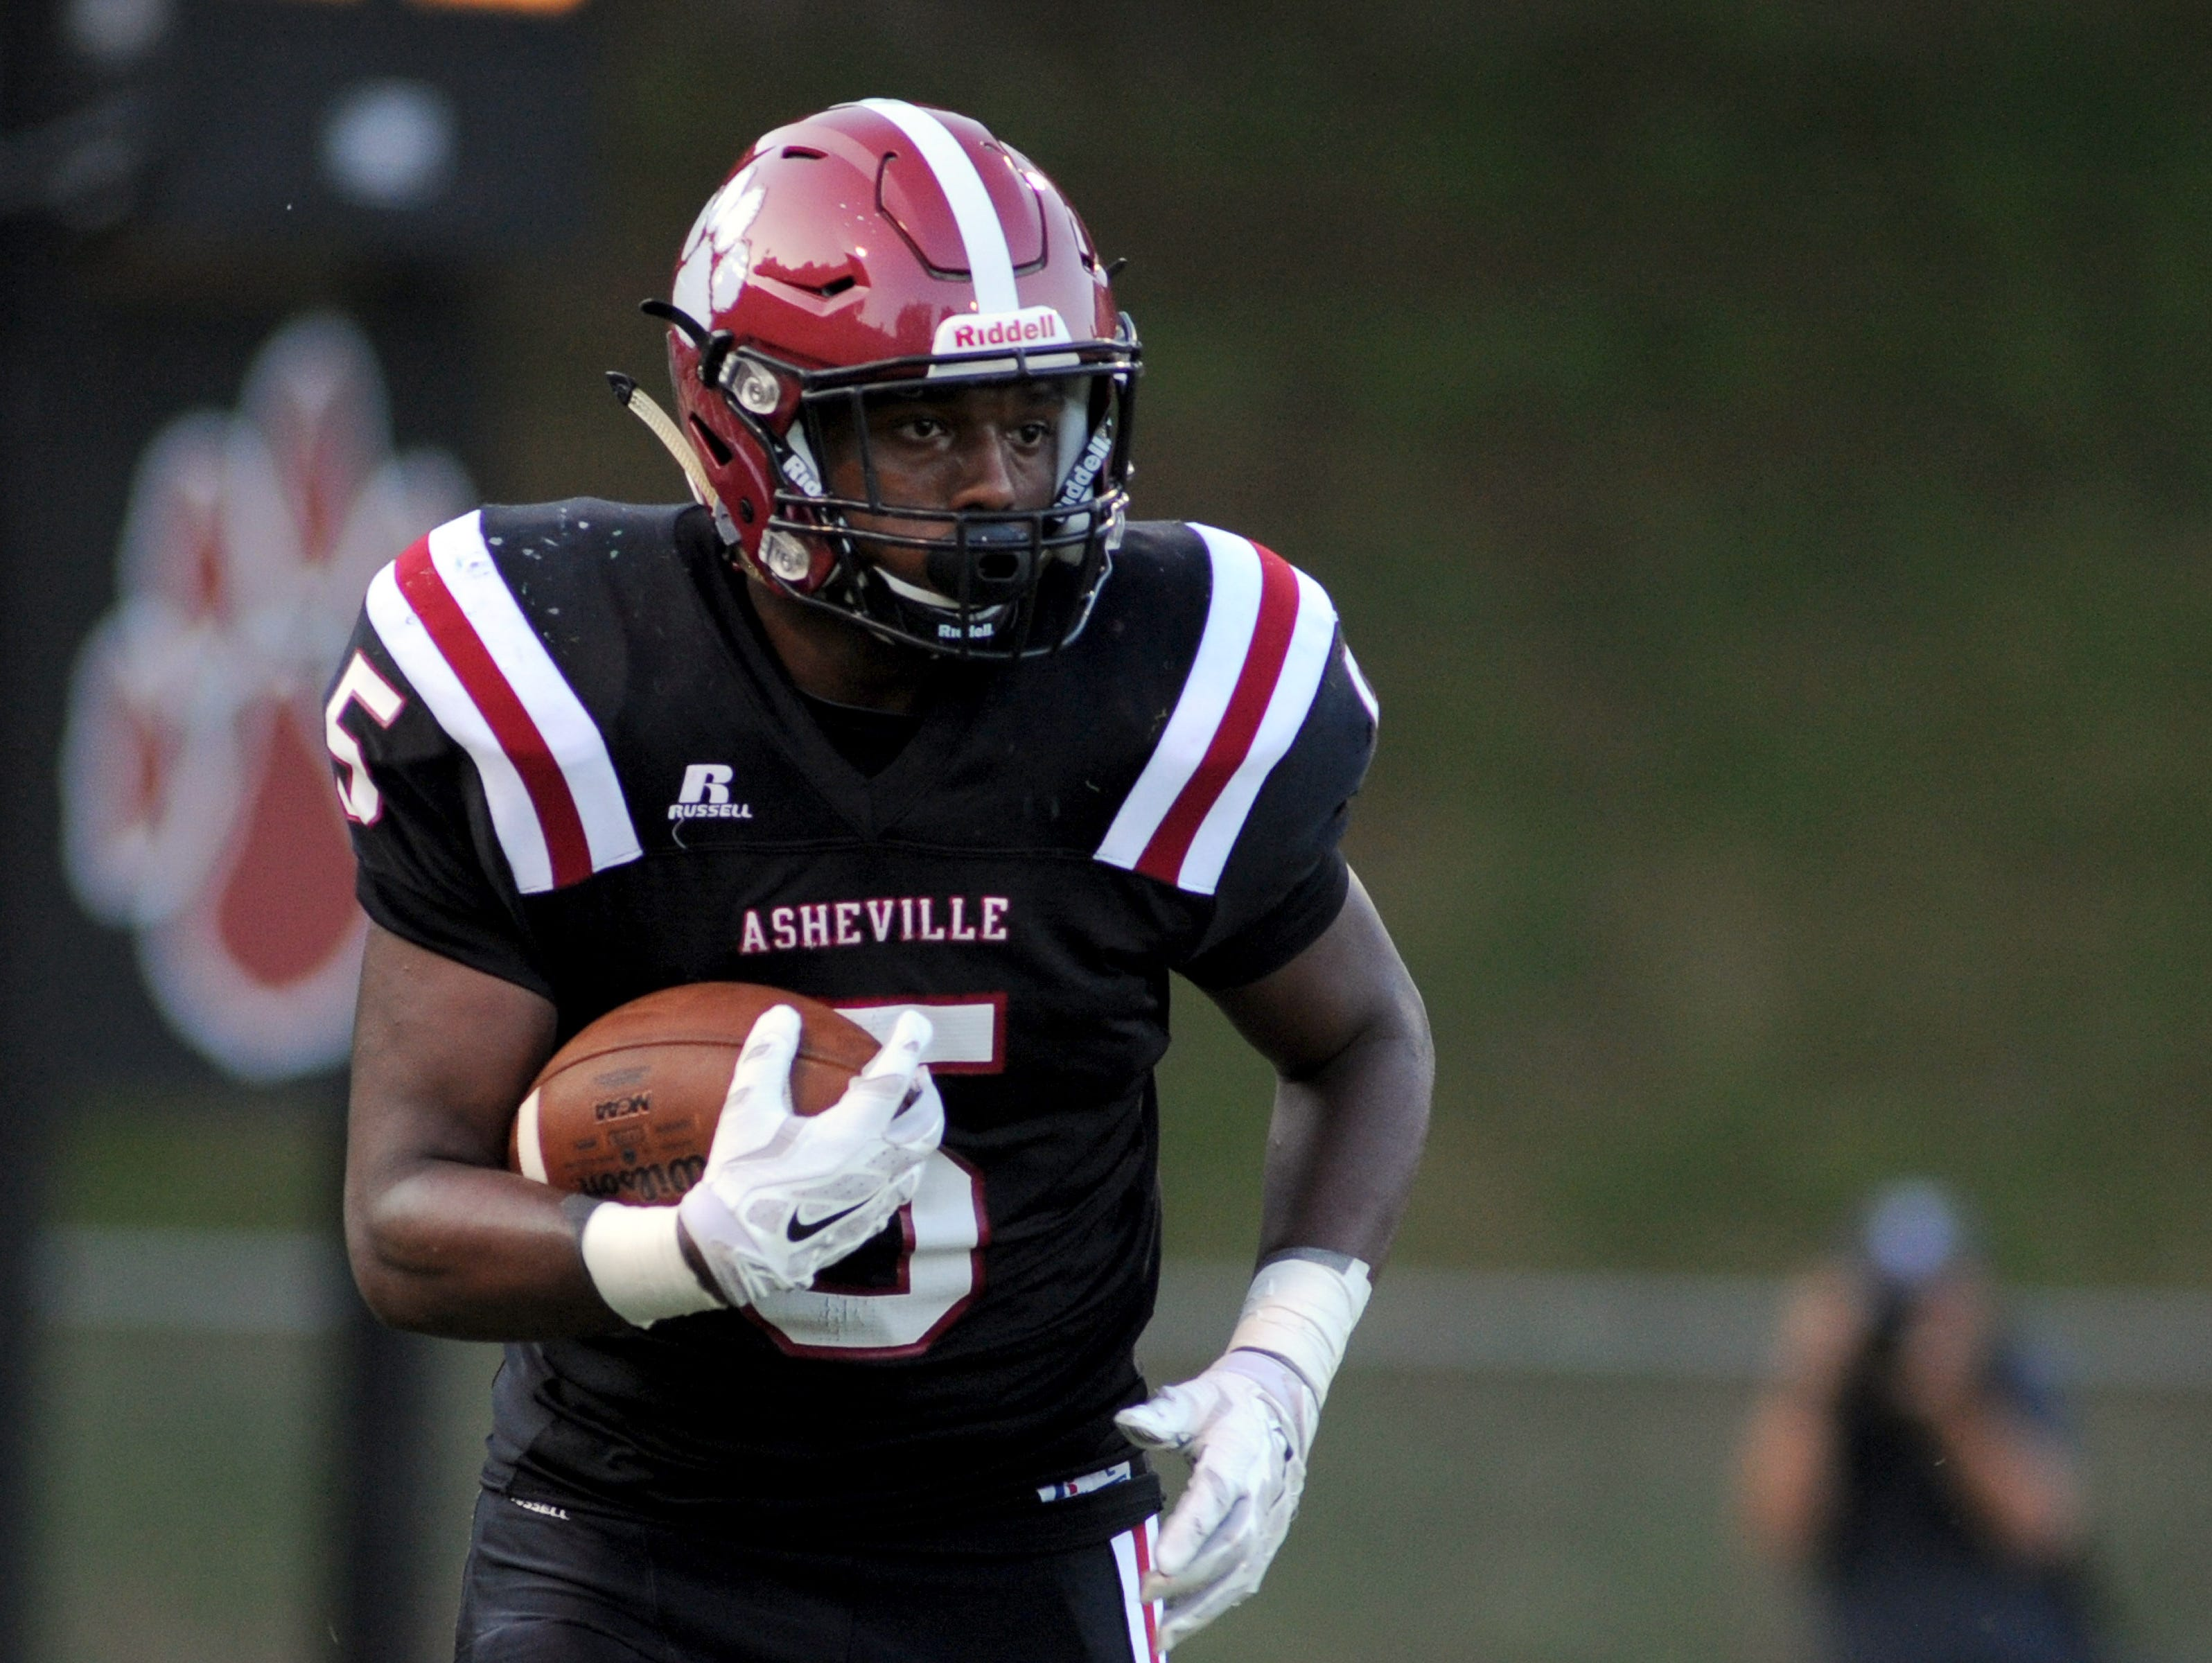 Reggie Battle and Asheville High host Pisgah on Friday in a matchup of 2-0 Western North Carolina football teams.